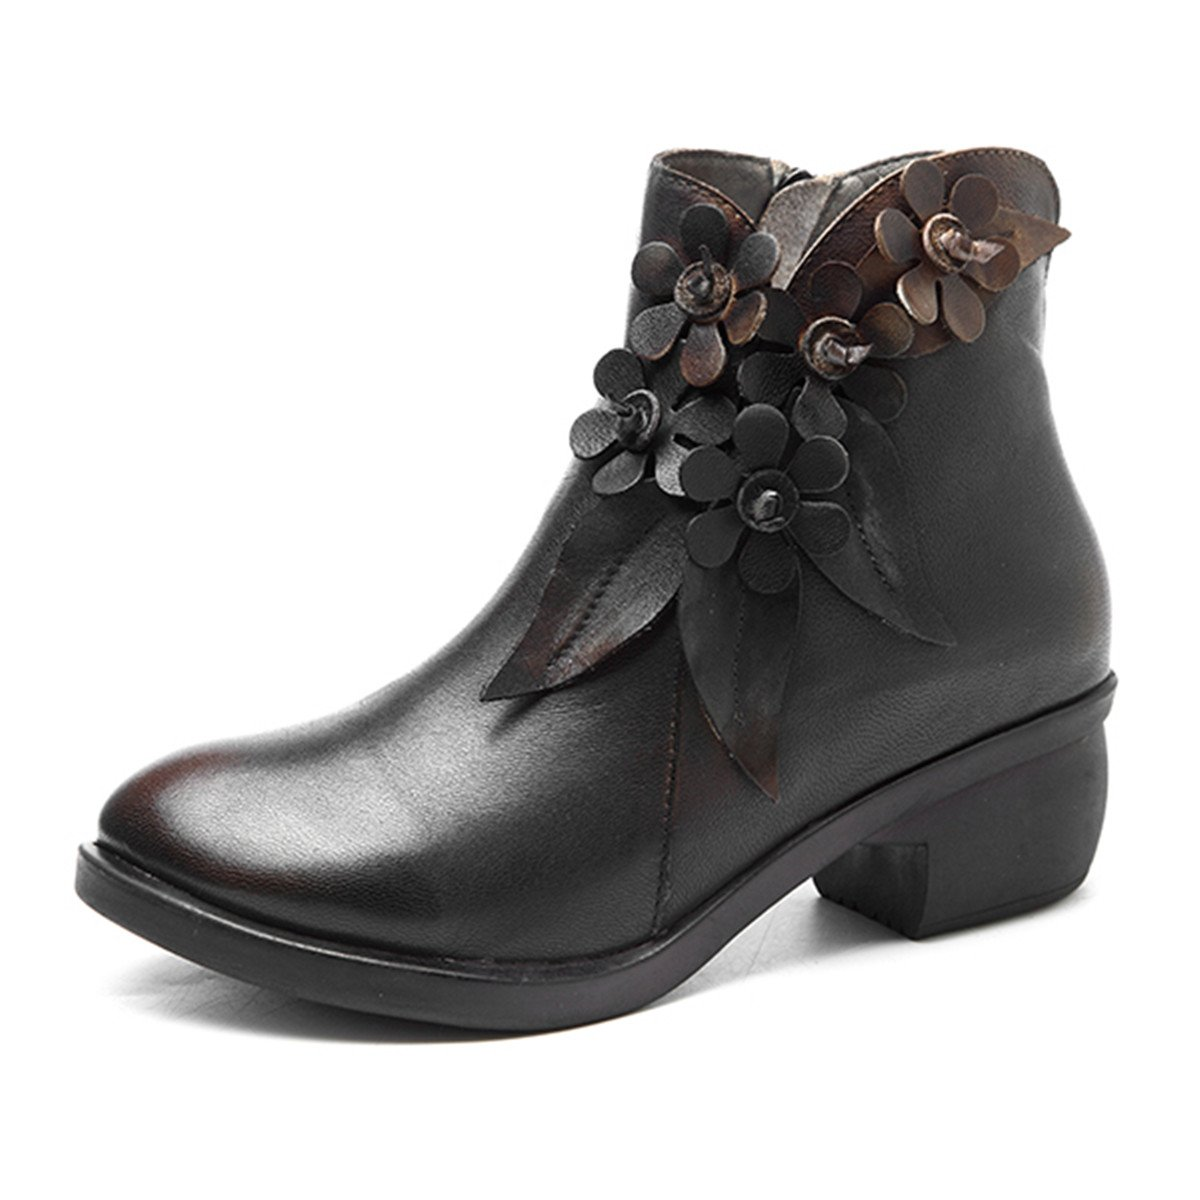 Socofy Leather Ankle Bootie, Women's Vintage Handmade Fashion Leather Boot Rose Floral Shoes Oxford Boots B077G2LCZK 6 M US|Dark Grey